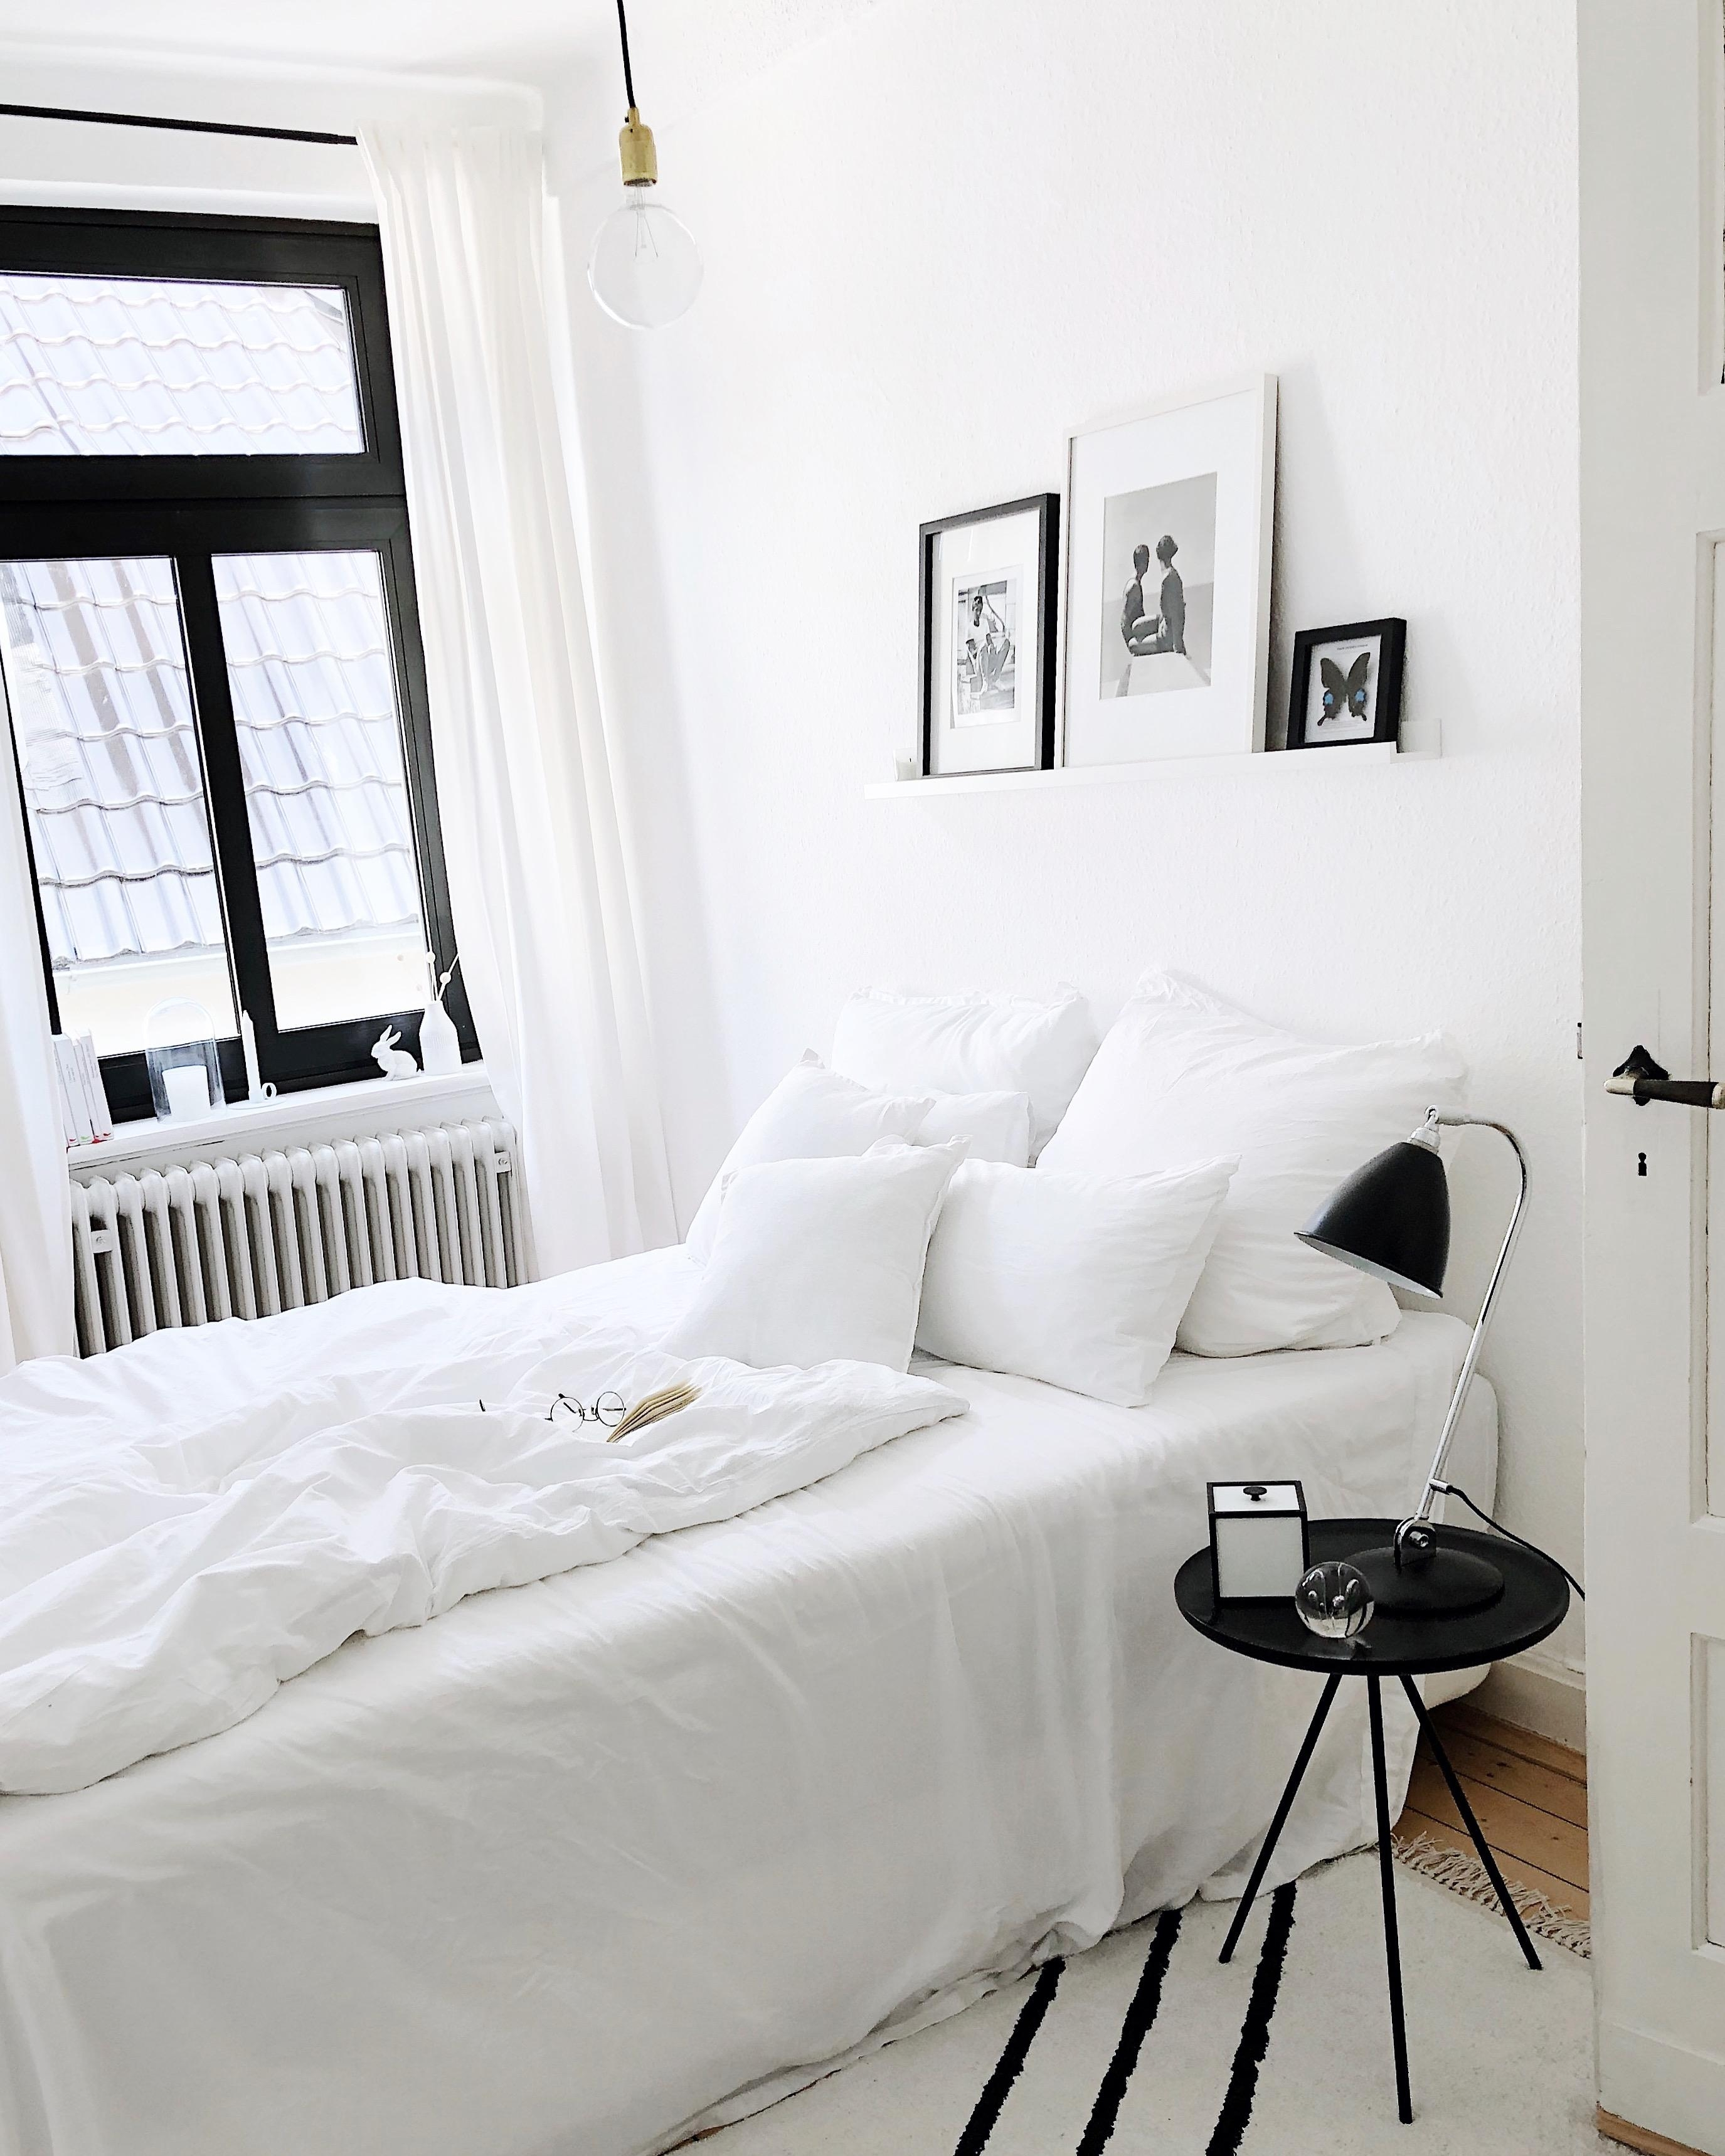 My happy place #bedroom #allwhite #blackandwhite